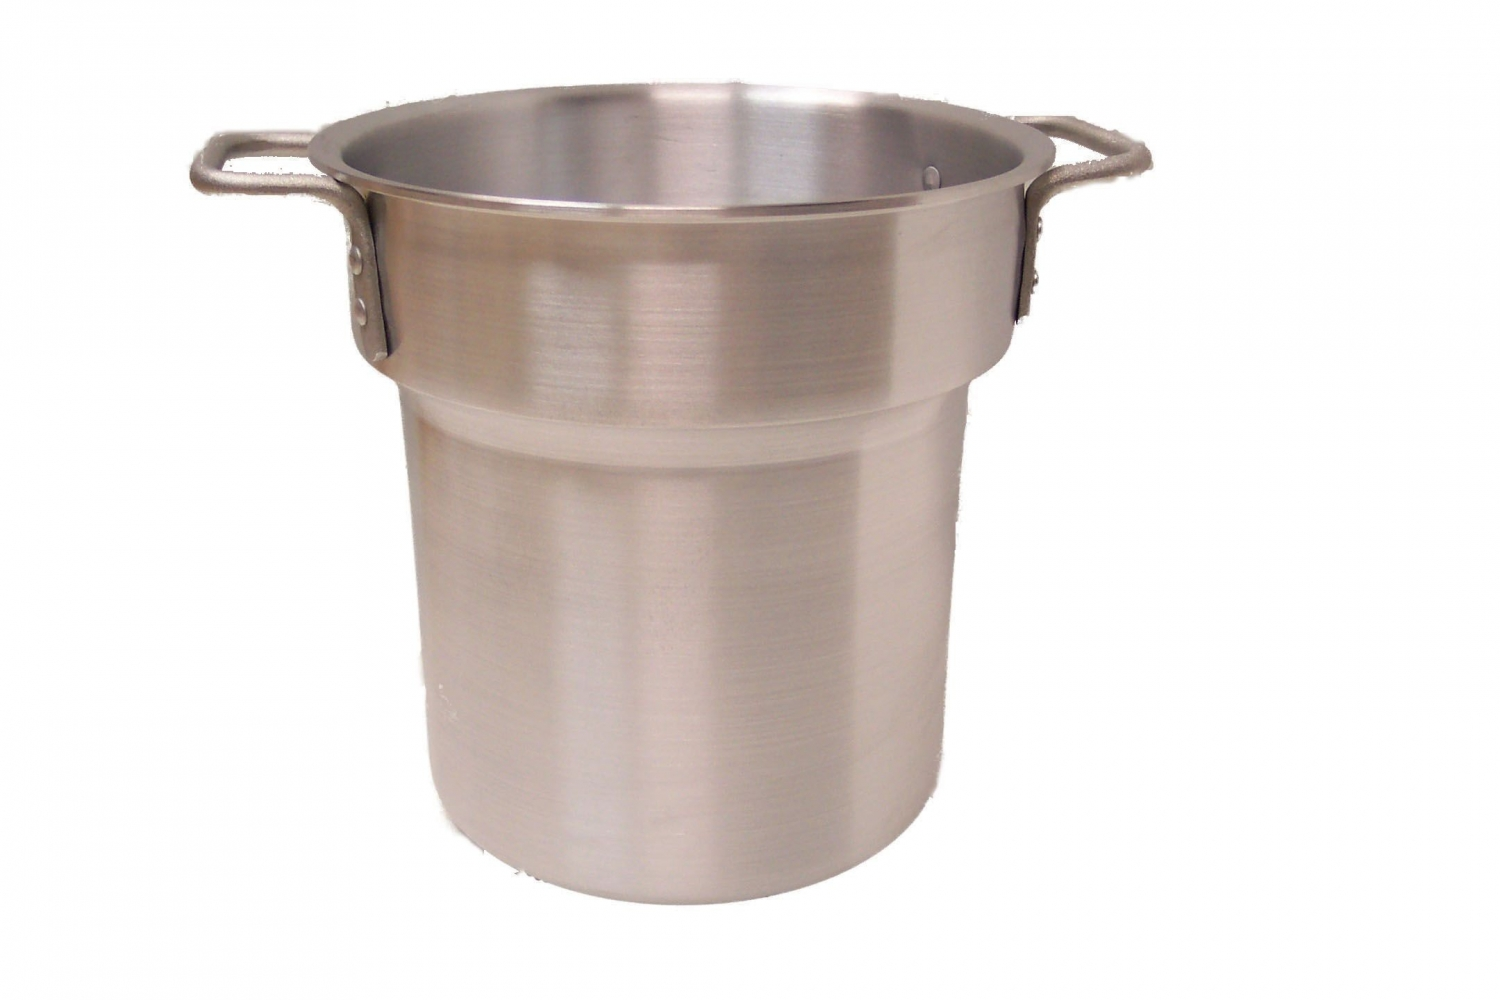 Johnson Rose 69208 Aluminum Double Boiler Insert for 7.8 Qt. Pot